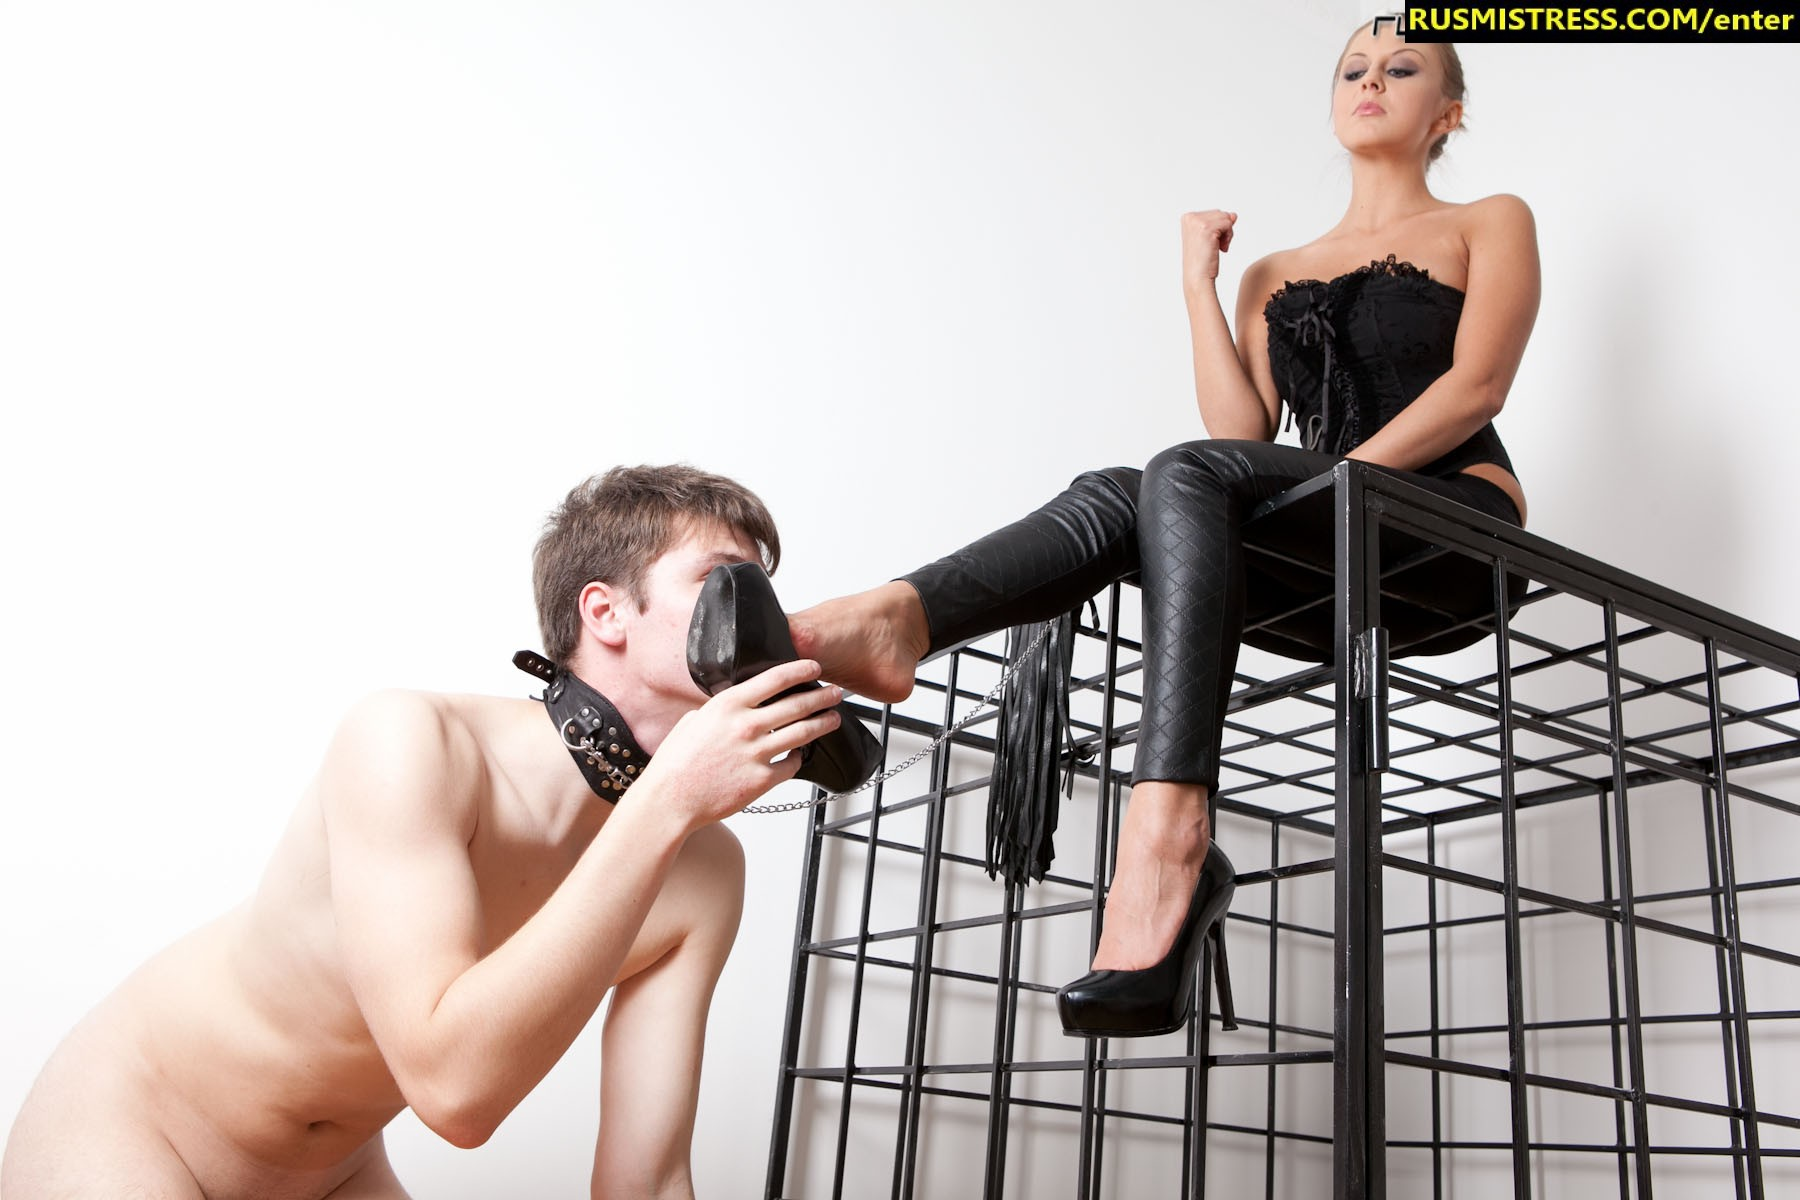 Slave is let out of his cage to get his mouth gagged with his domme's feet